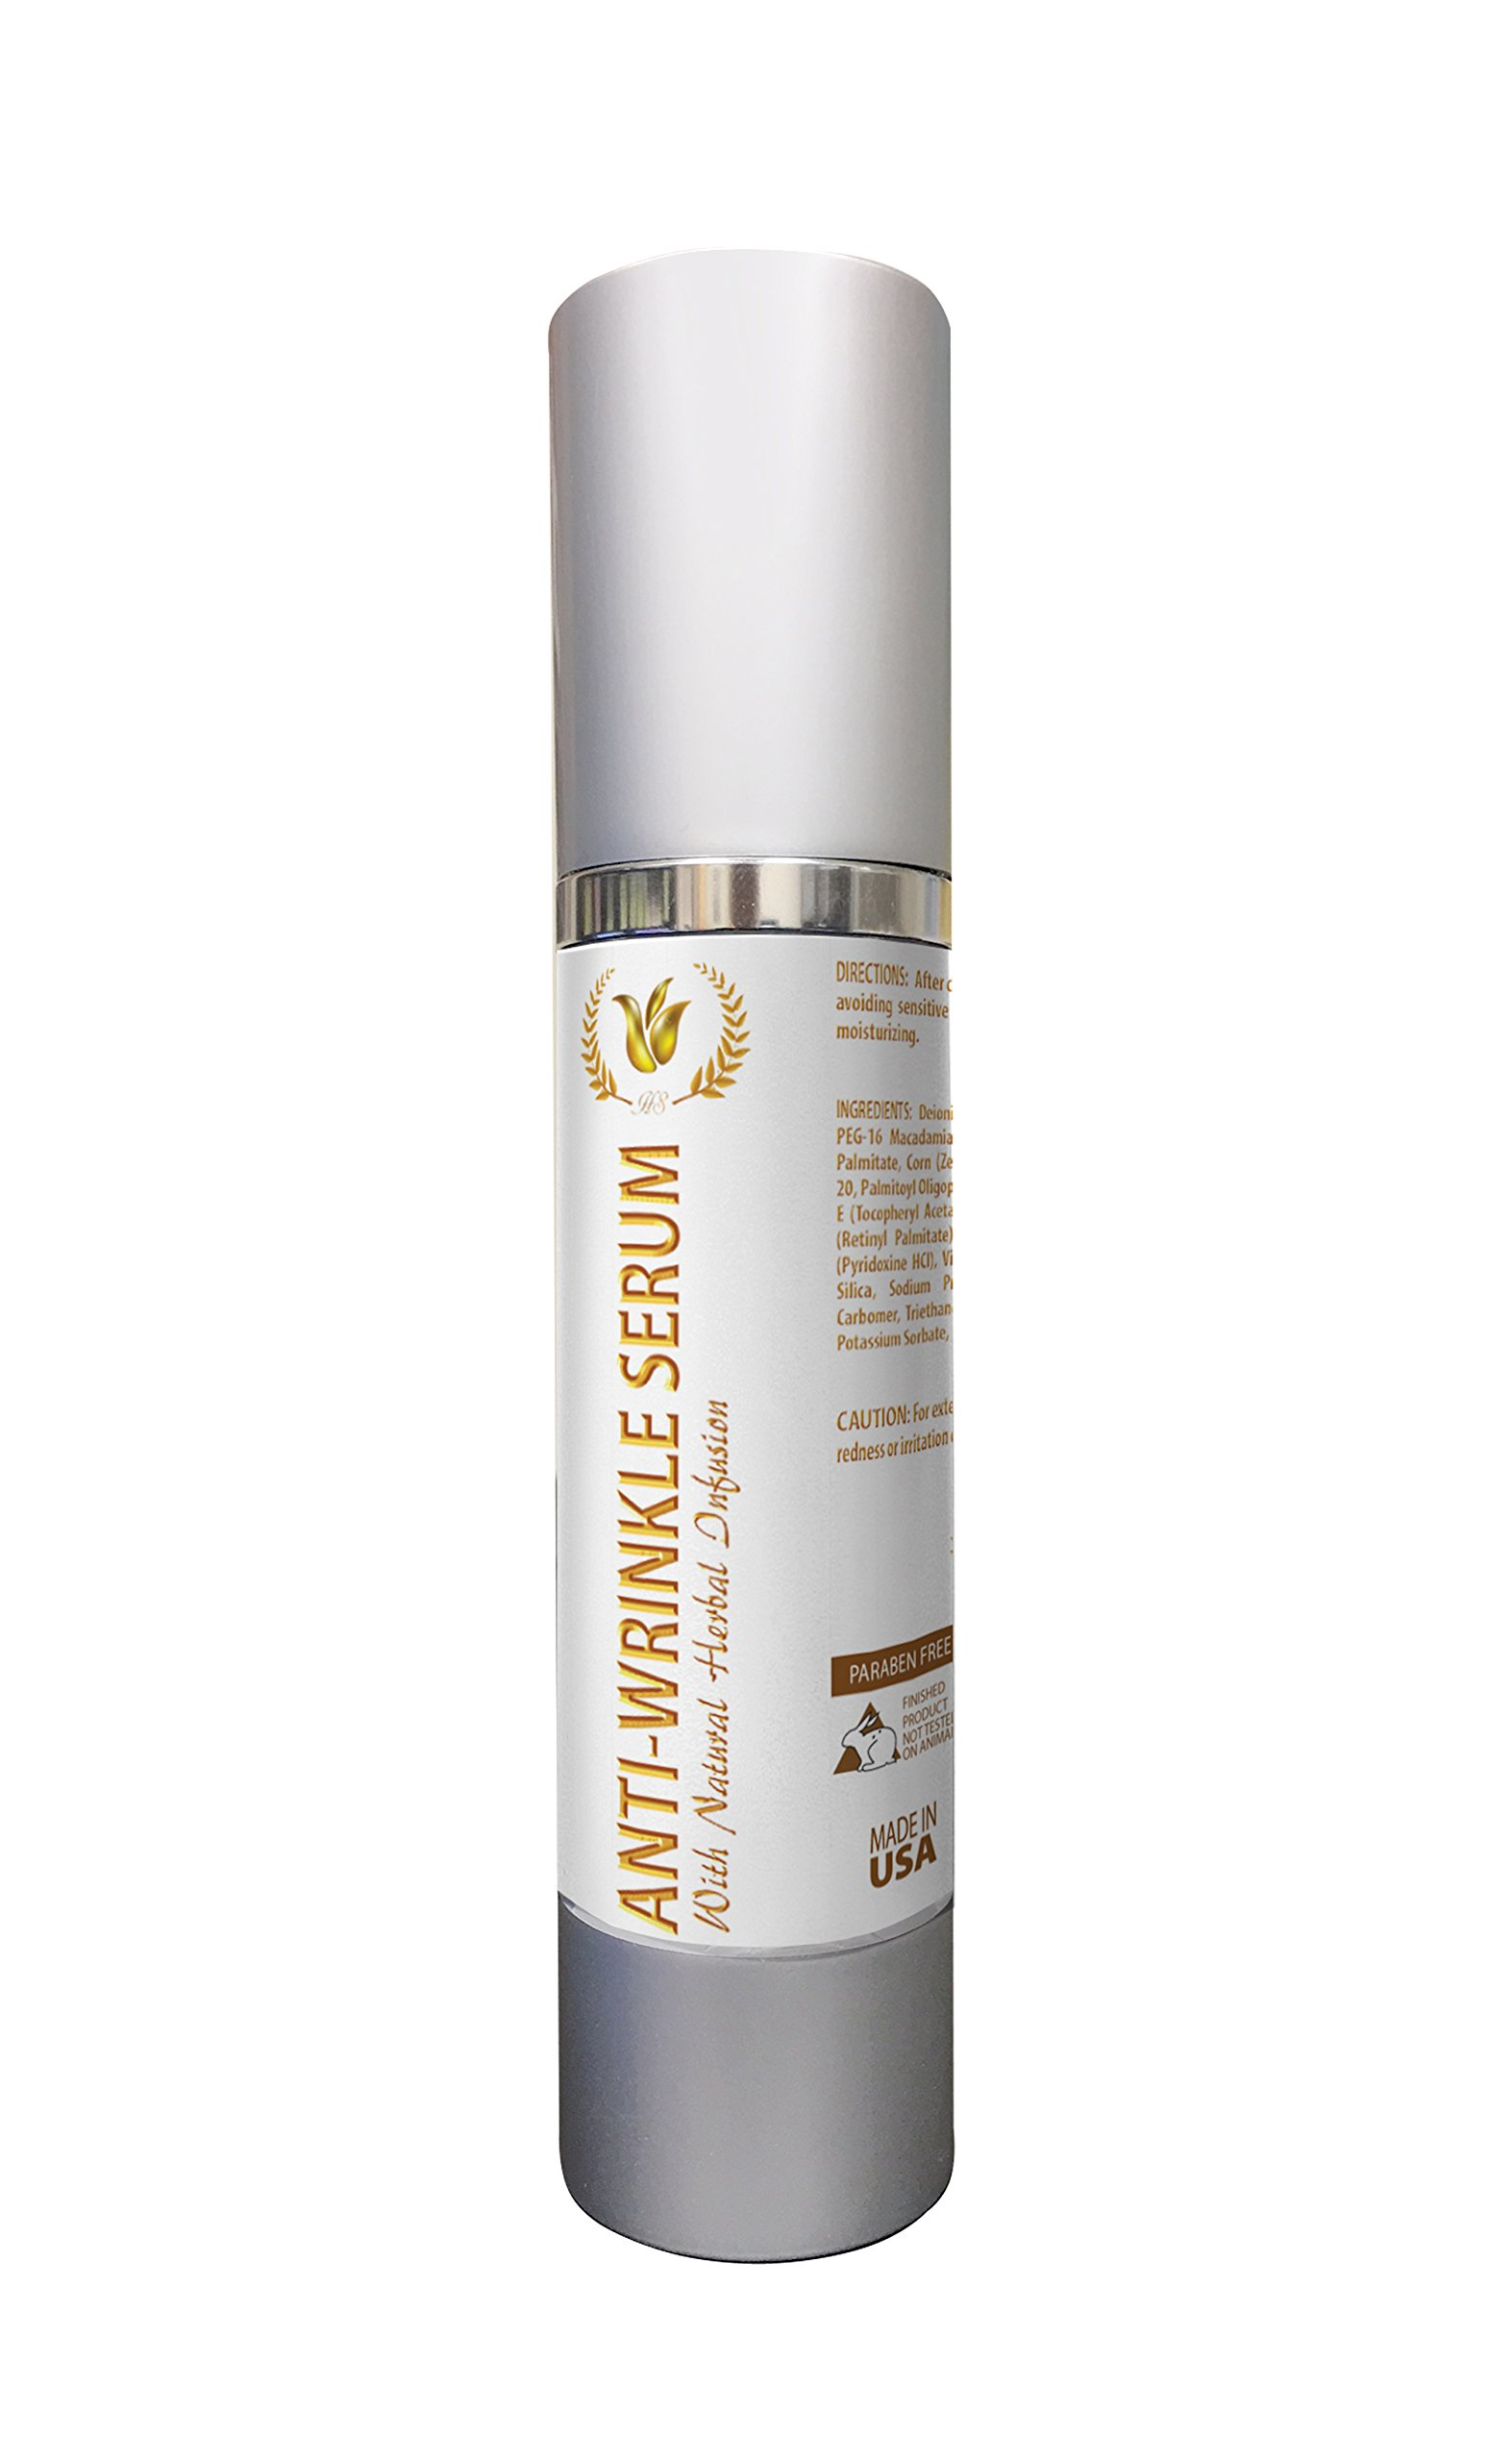 Anti wrinkle serum best seller - ANTI-WRINKLE SERUM - Products for women - 1 Bottle by Health Solution Prime